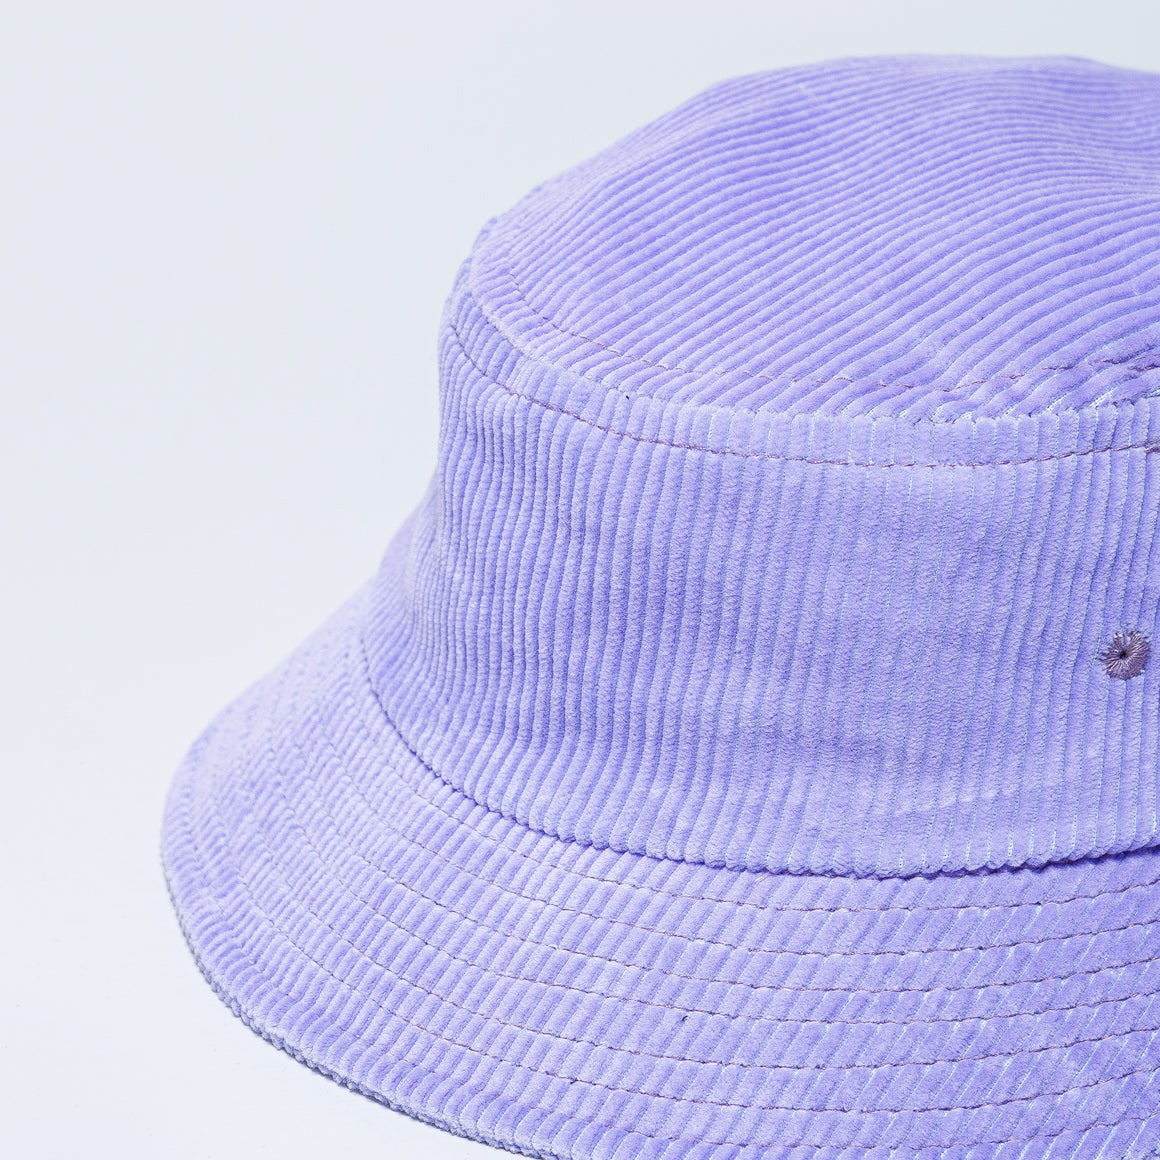 Lite Year - Bucket Hat - Lavendar Eight Wale Corduroy - Up There